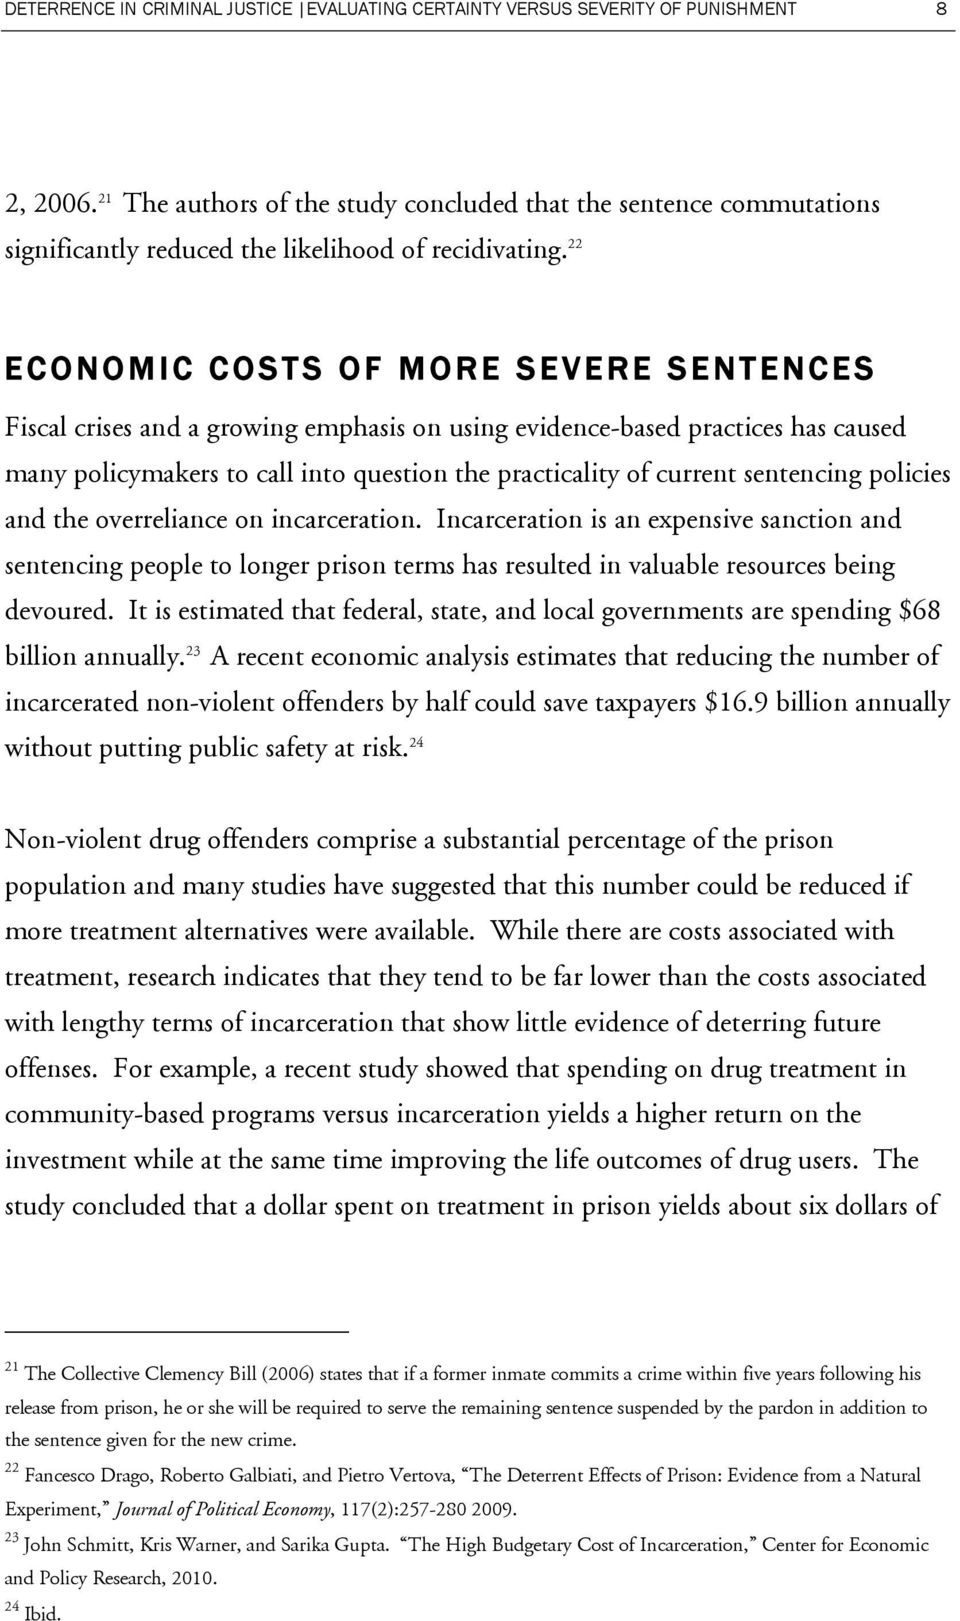 22 ECONOMIC COSTS OF MORE SEVERE SENTENCES Fiscal crises and a growing emphasis on using evidence-based practices has caused many policymakers to call into question the practicality of current